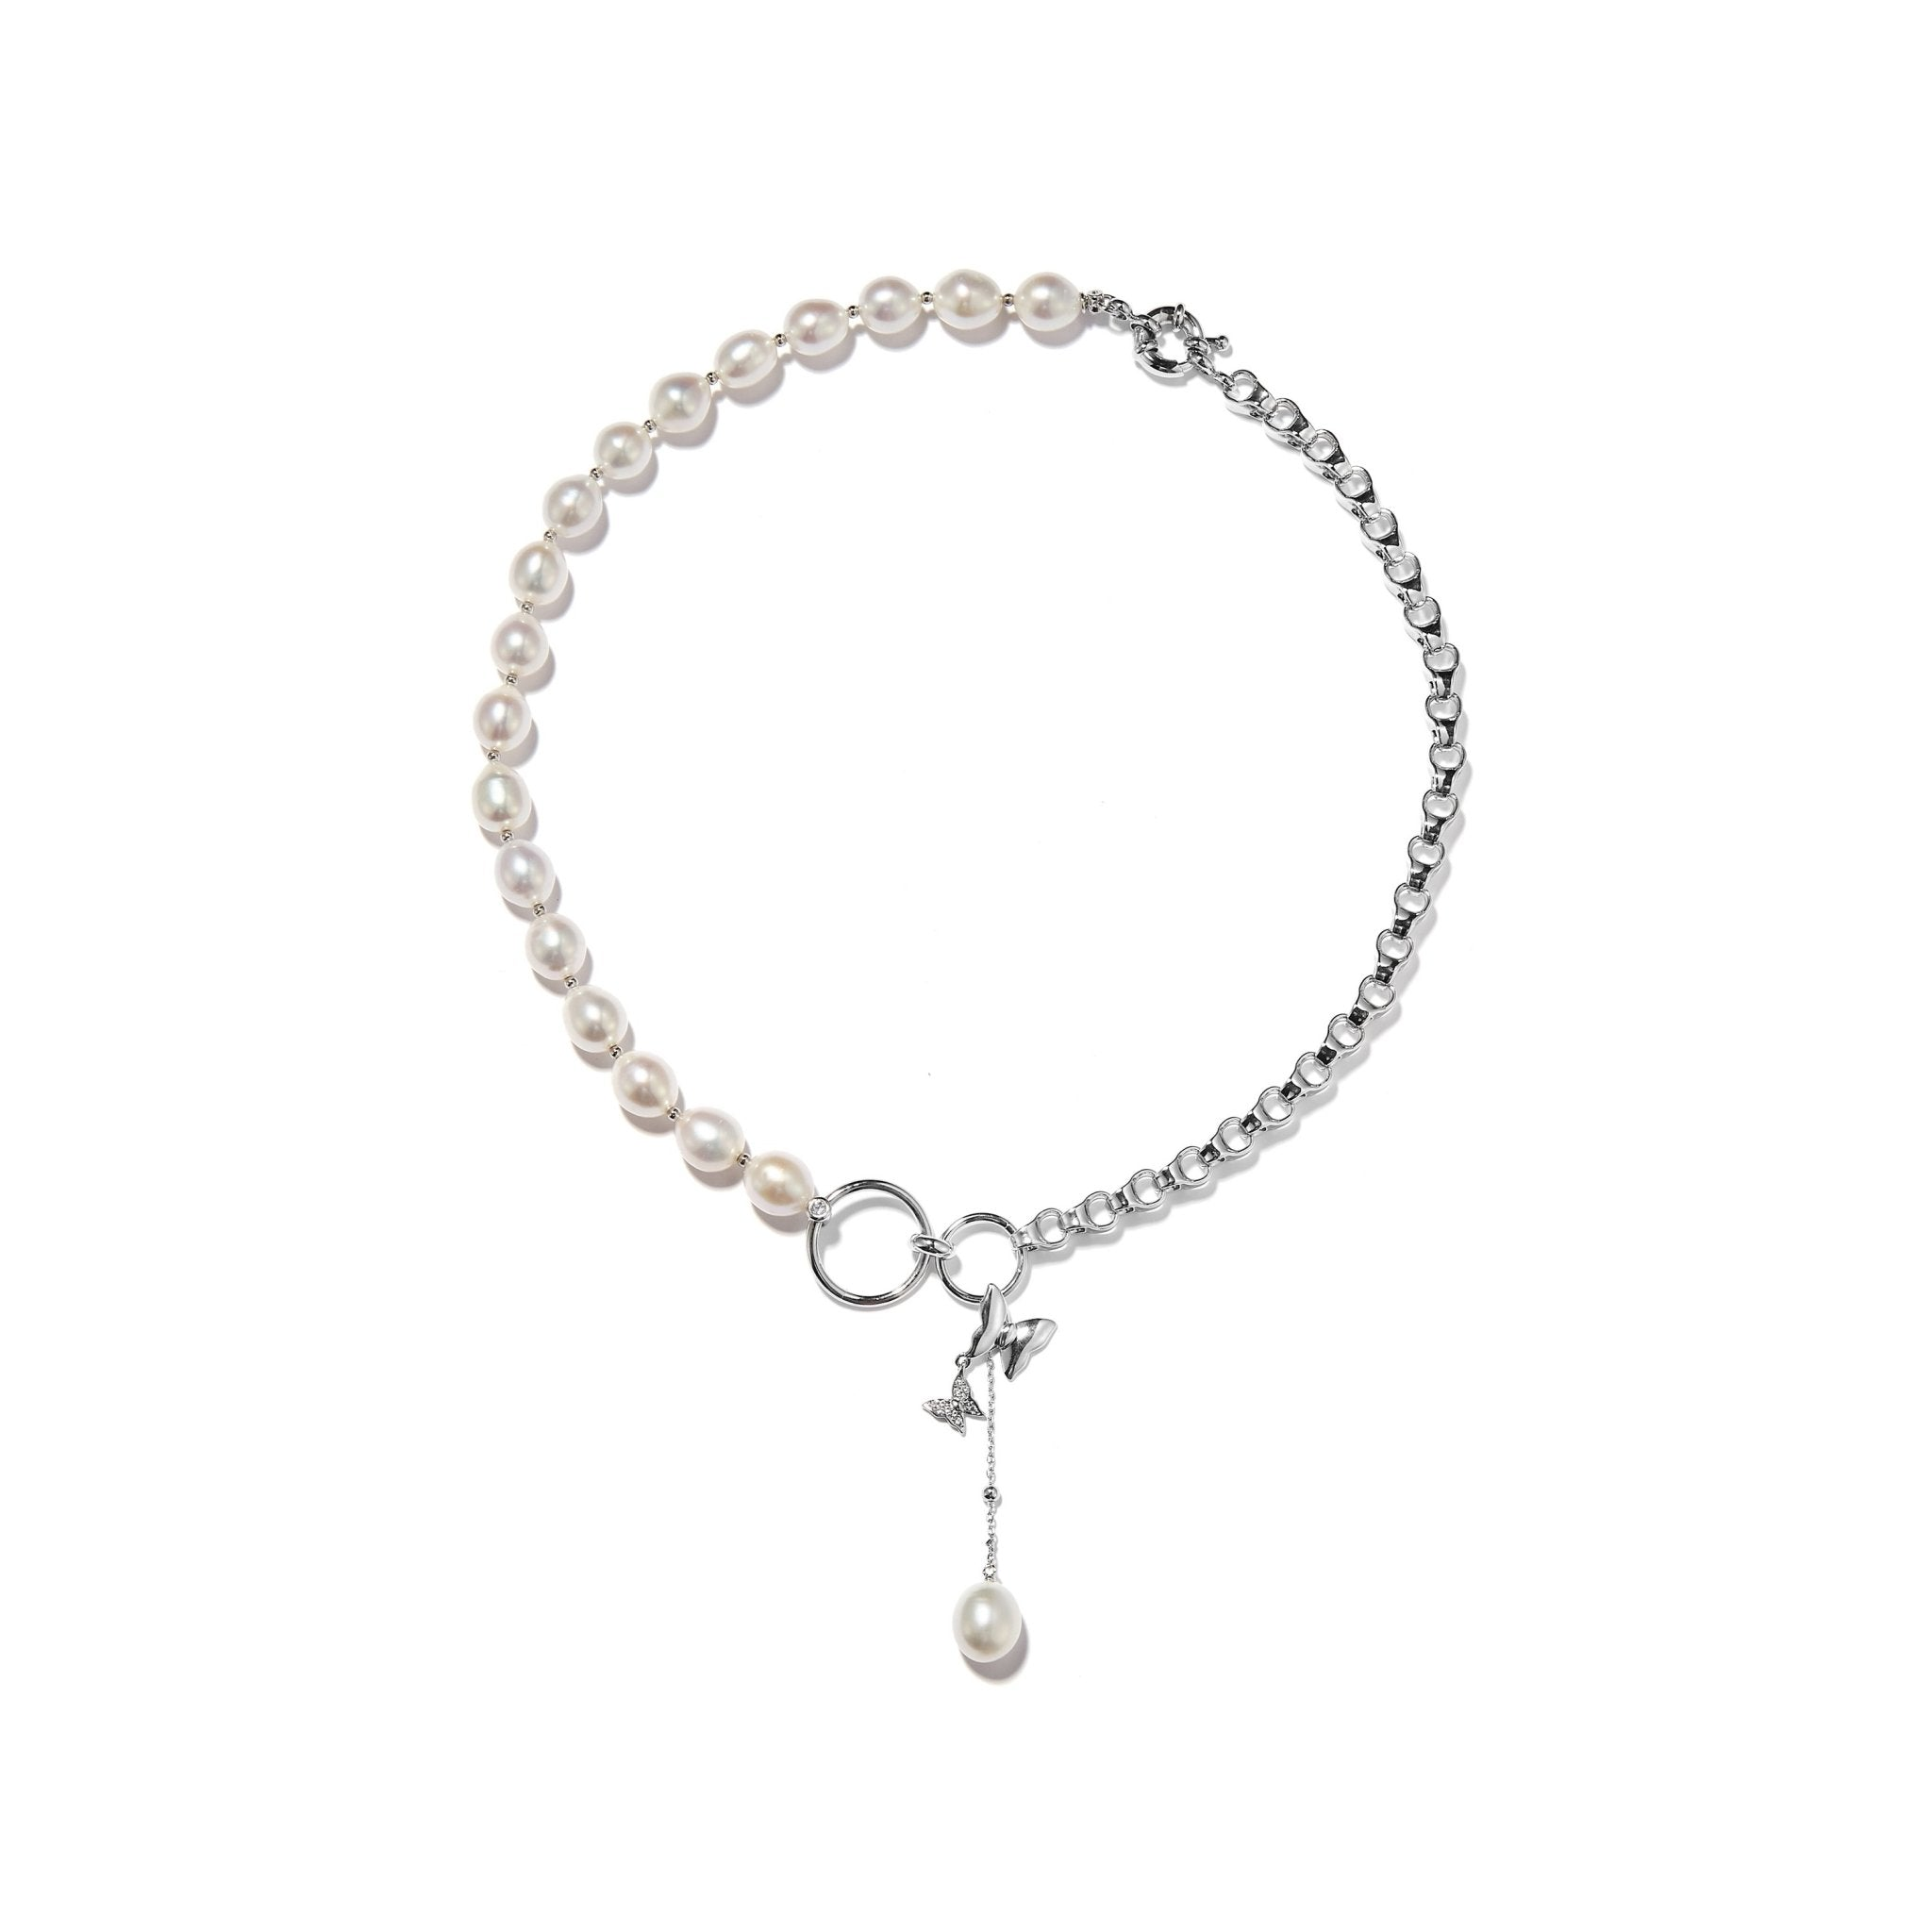 LOST IN ECHO Comma Pearl Necklace Silver | MADA IN CHINA